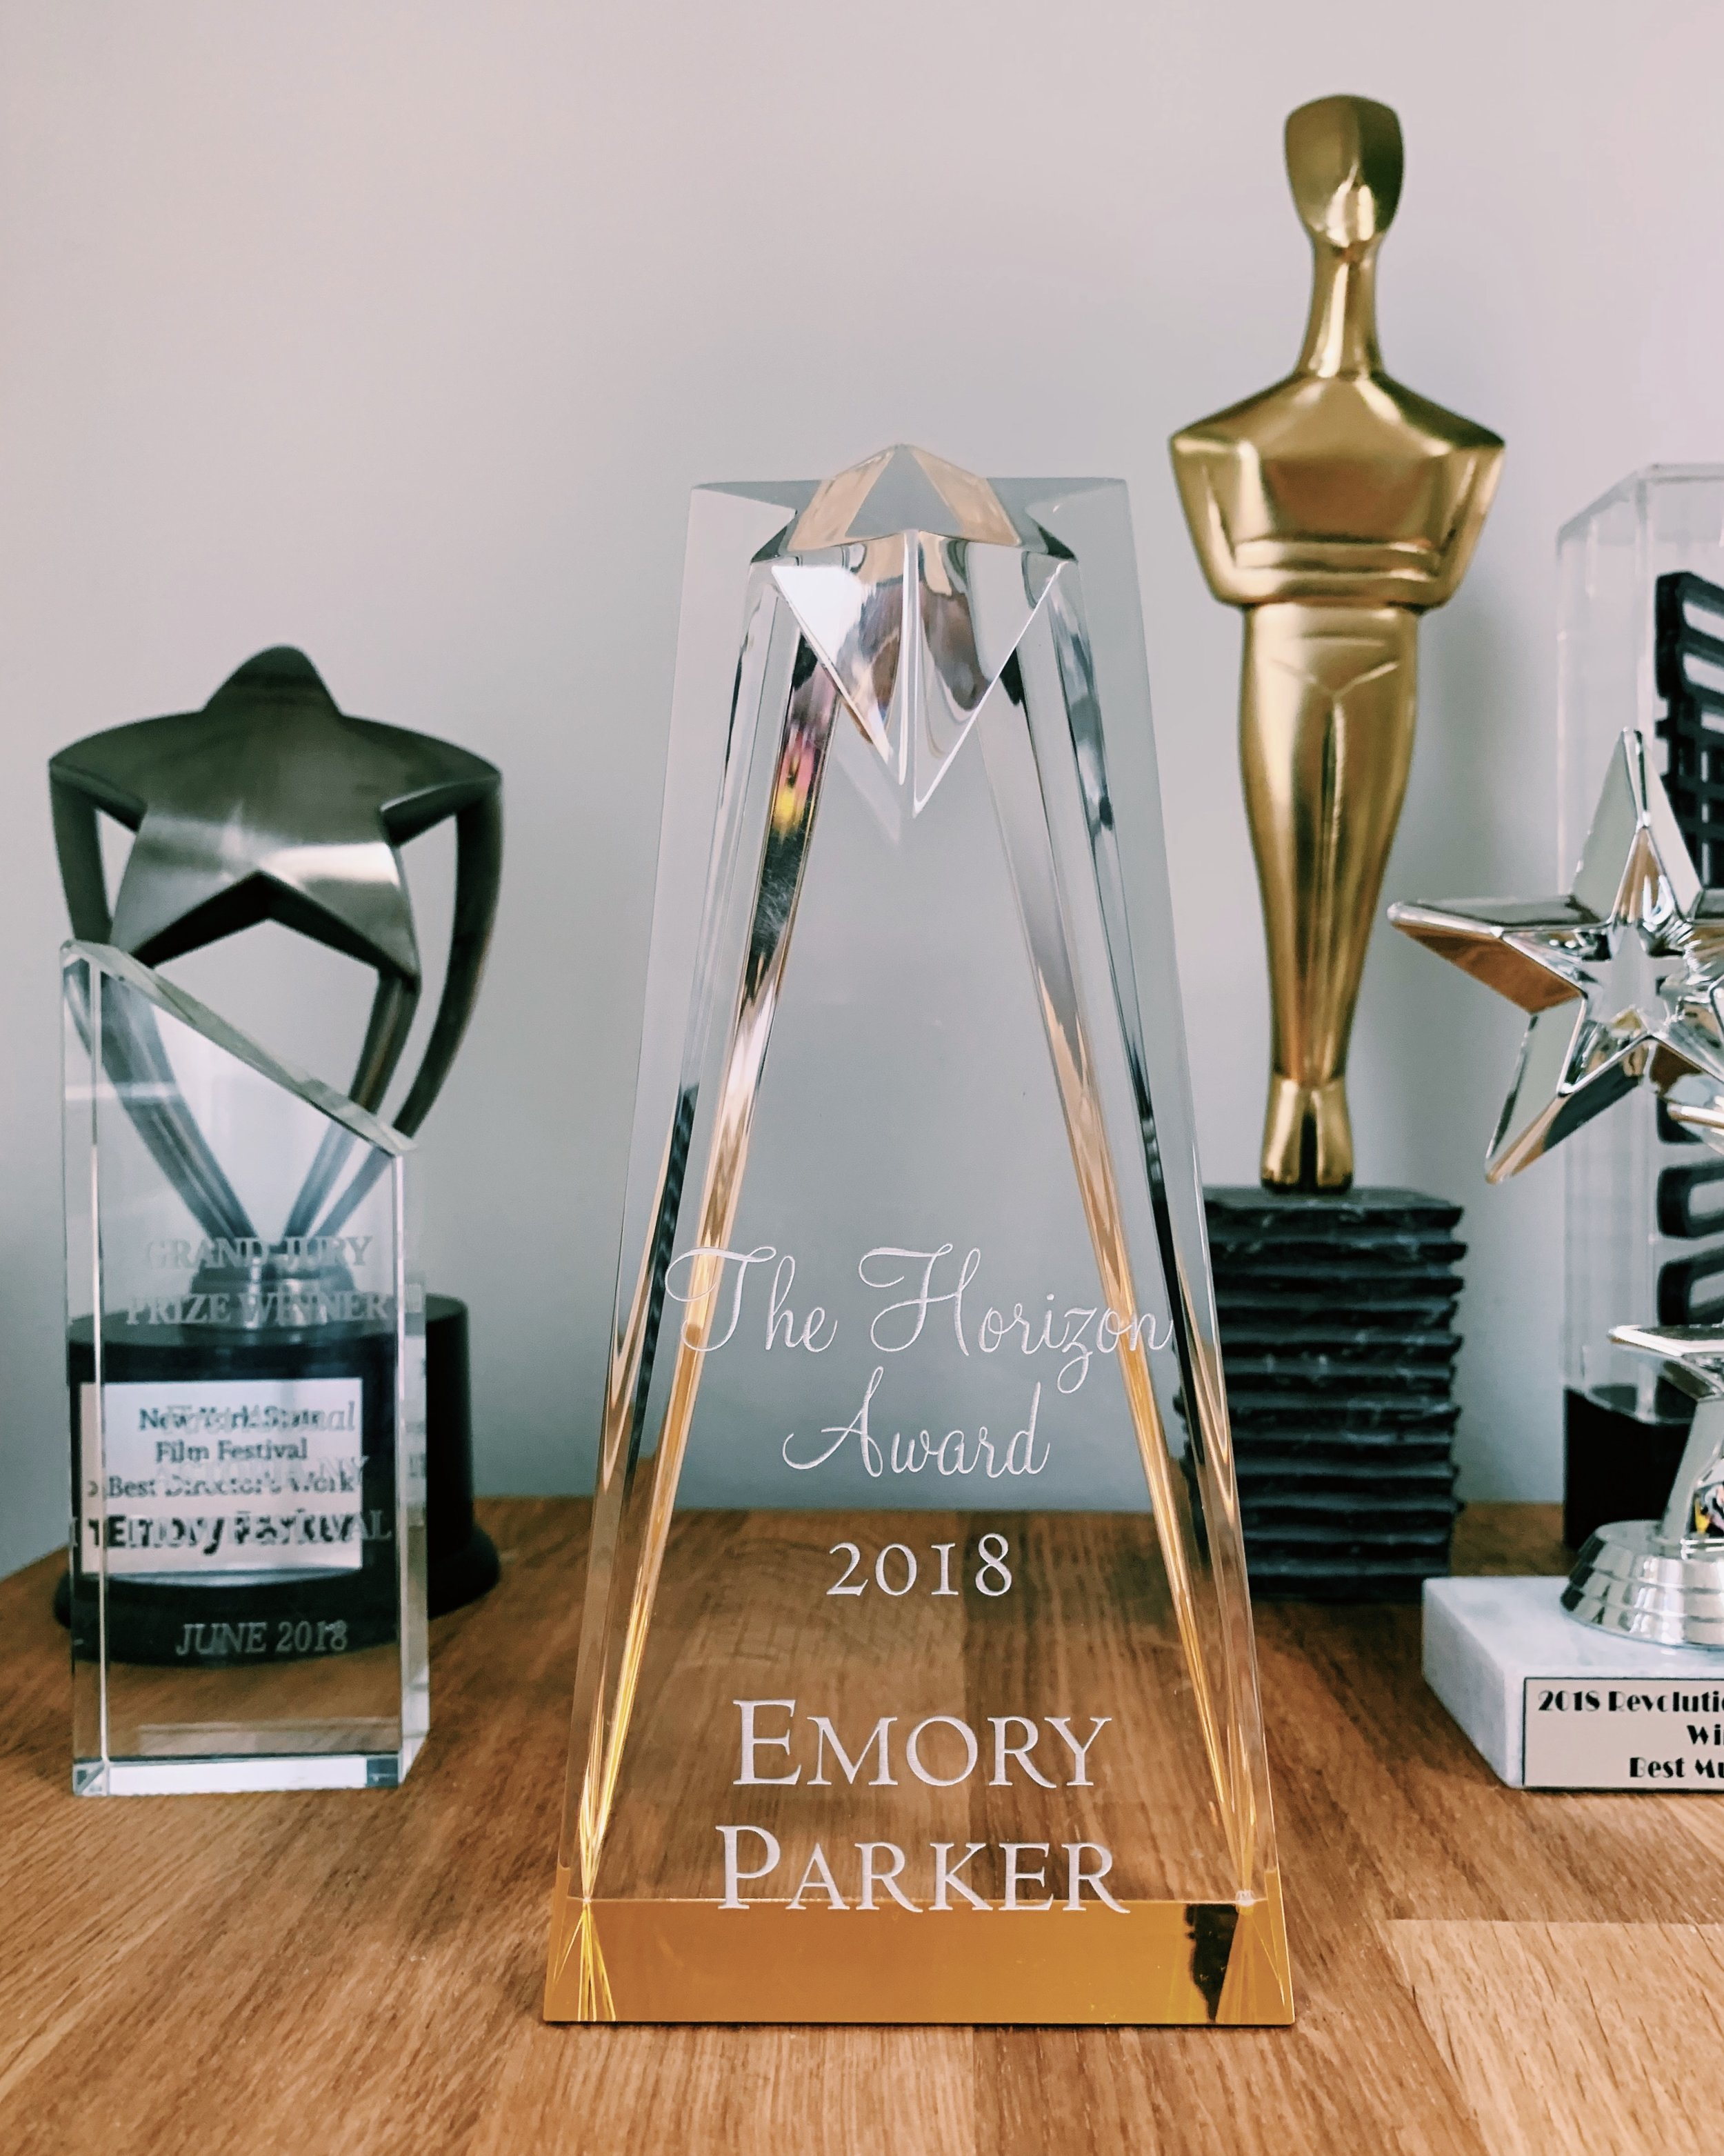 A beautiful trophy from Cassian Elwes and the founders of the Horizon Award.